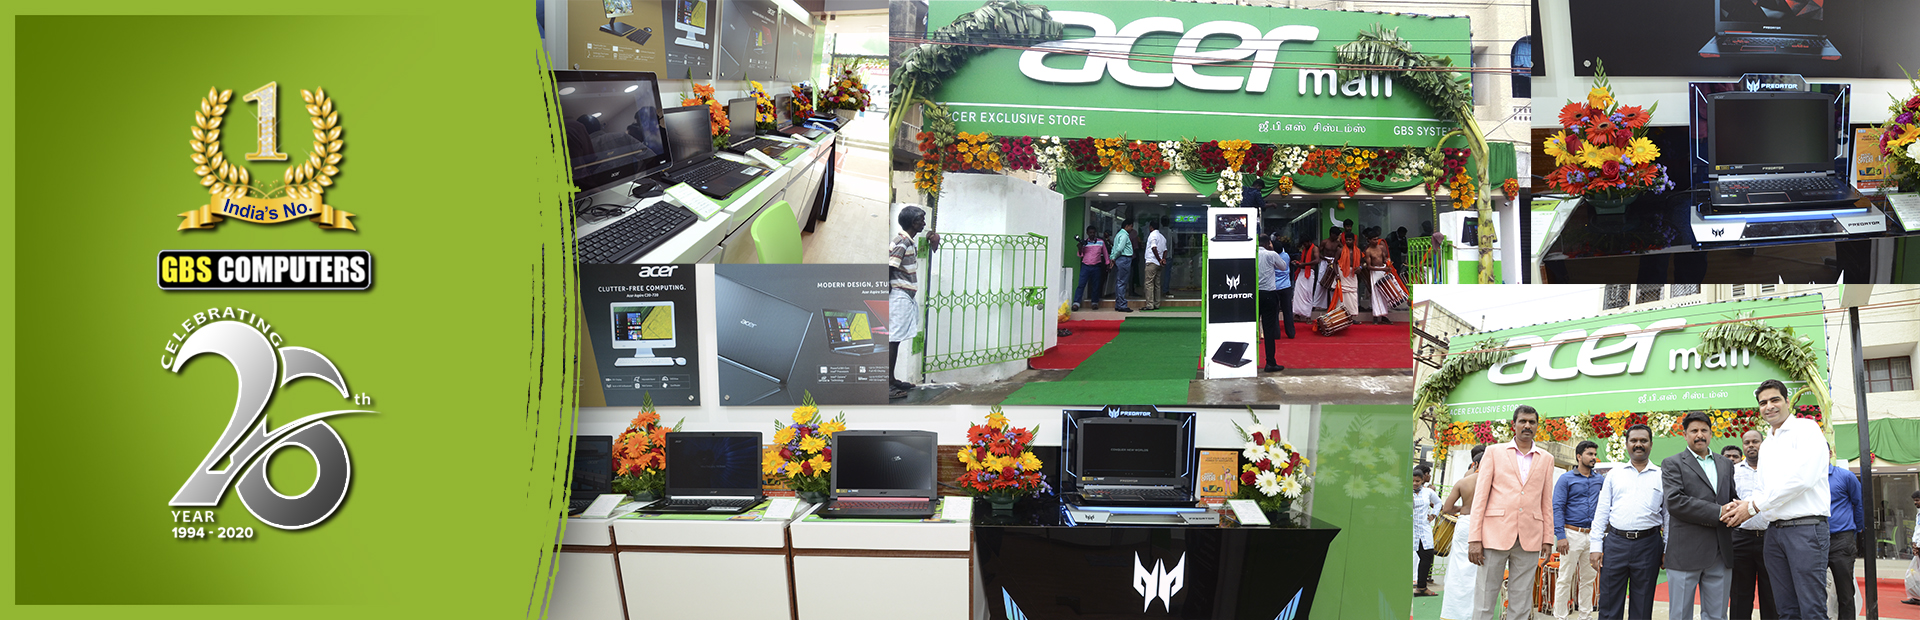 acer showroom gbs